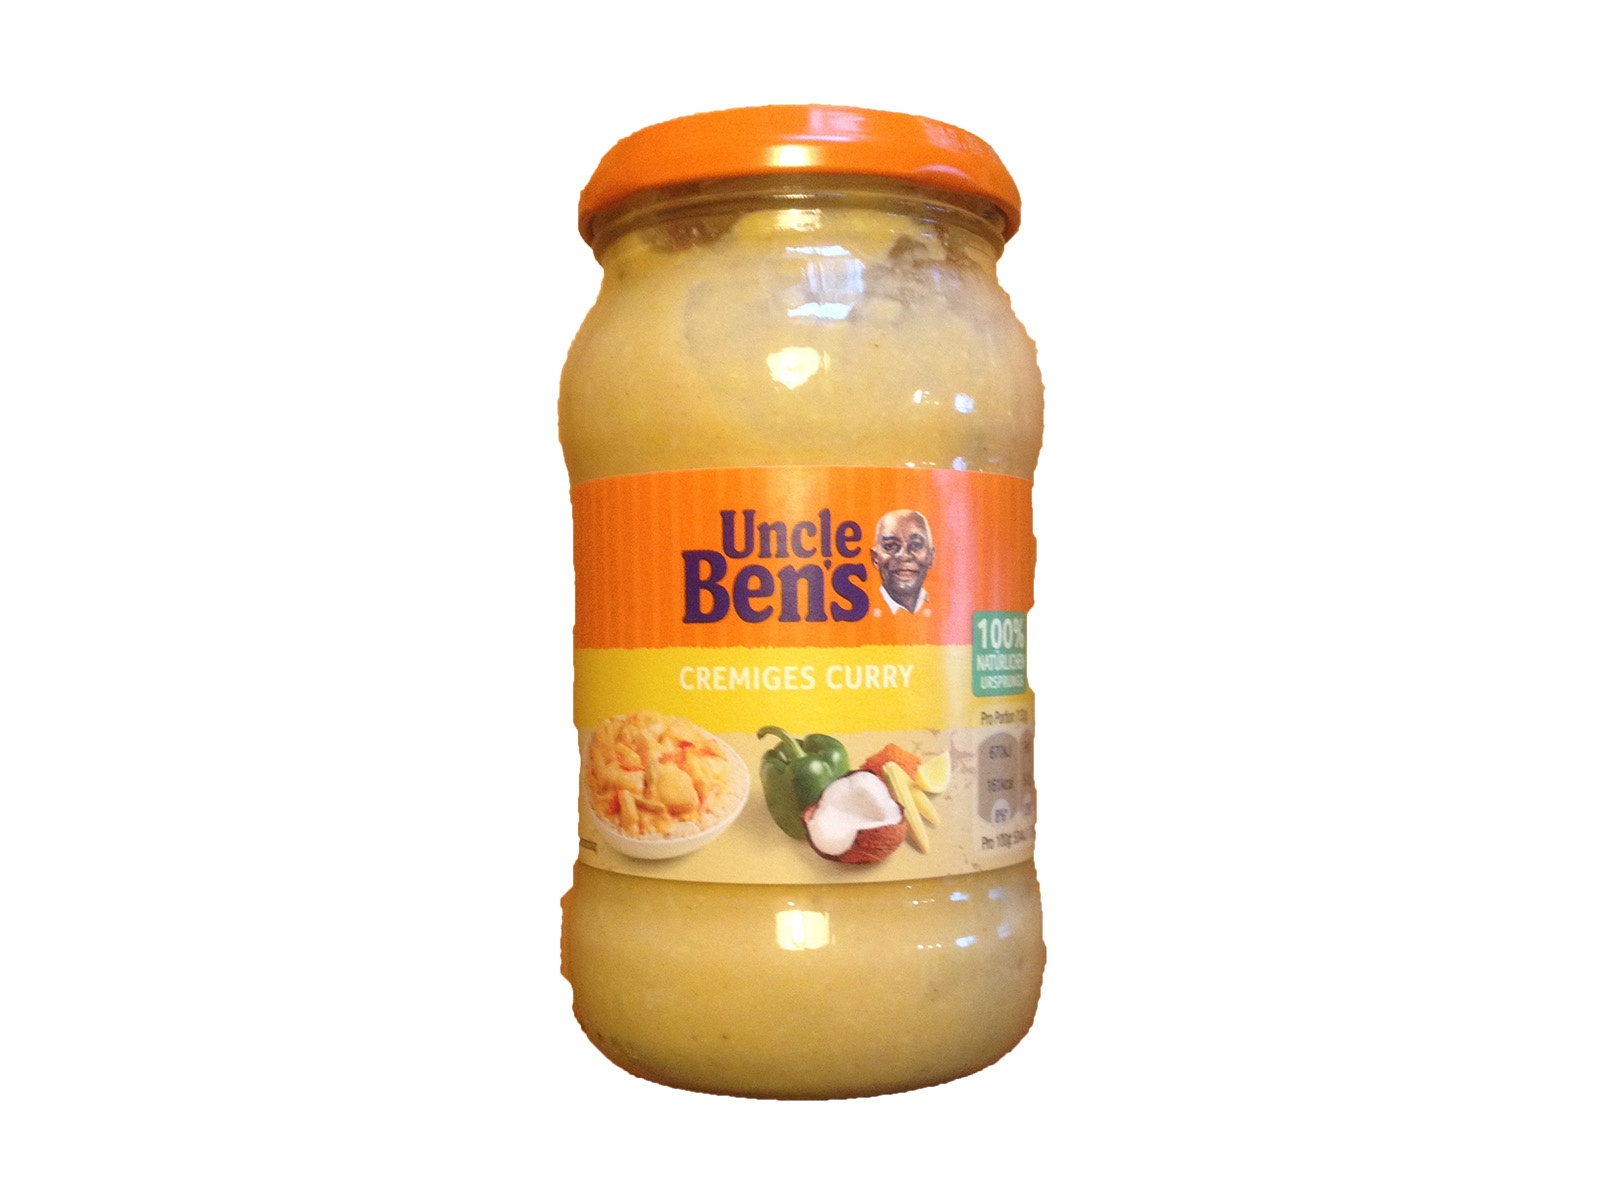 Uncle Ben's Cremiges Curry